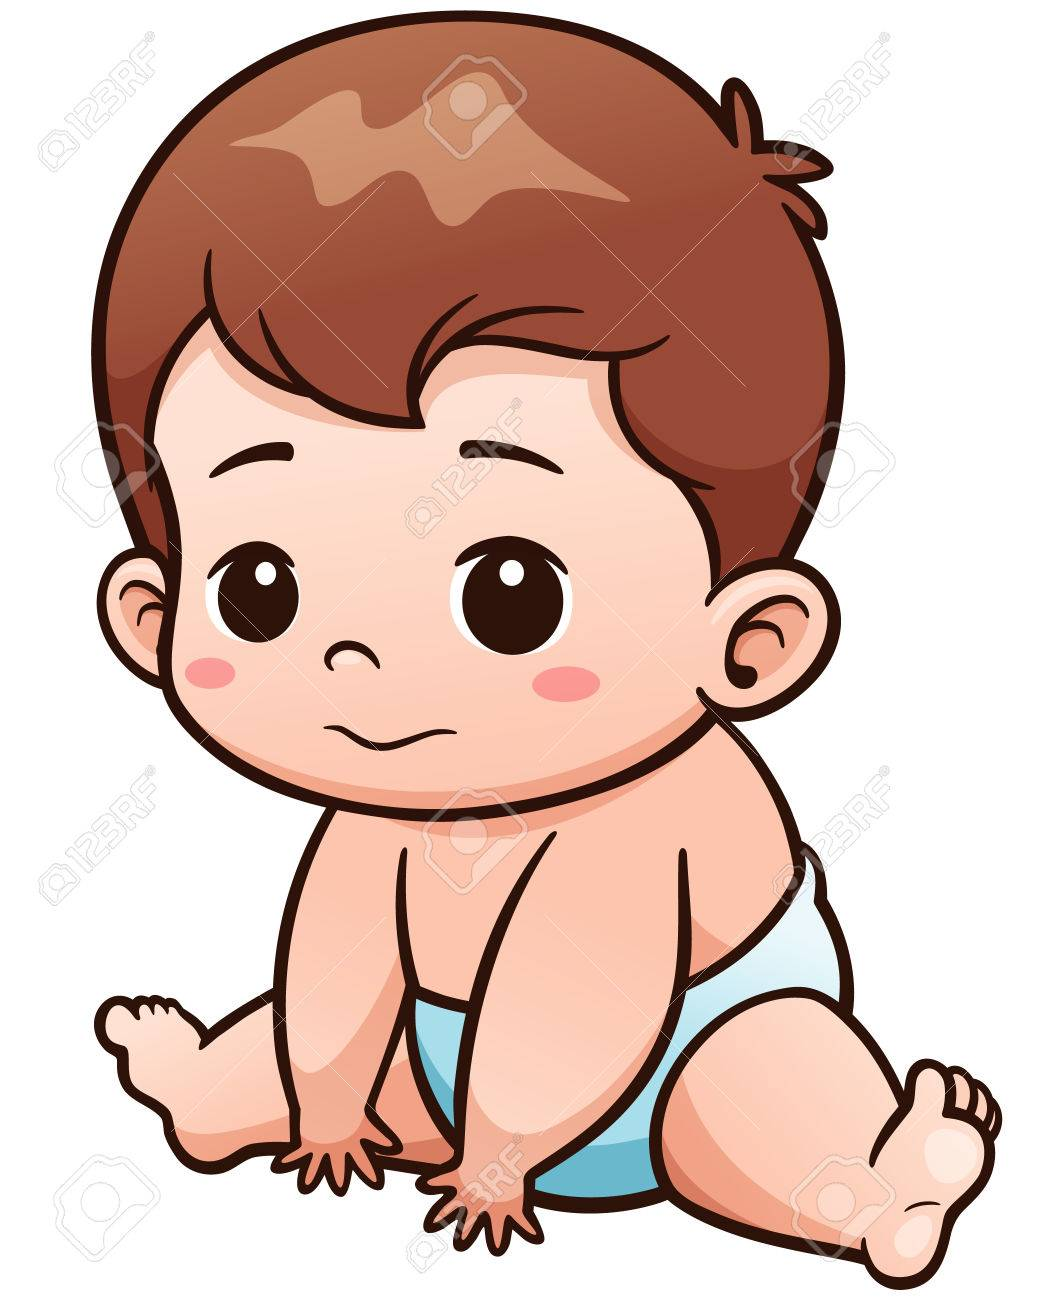 Brothers clipart cute. Baby brother station